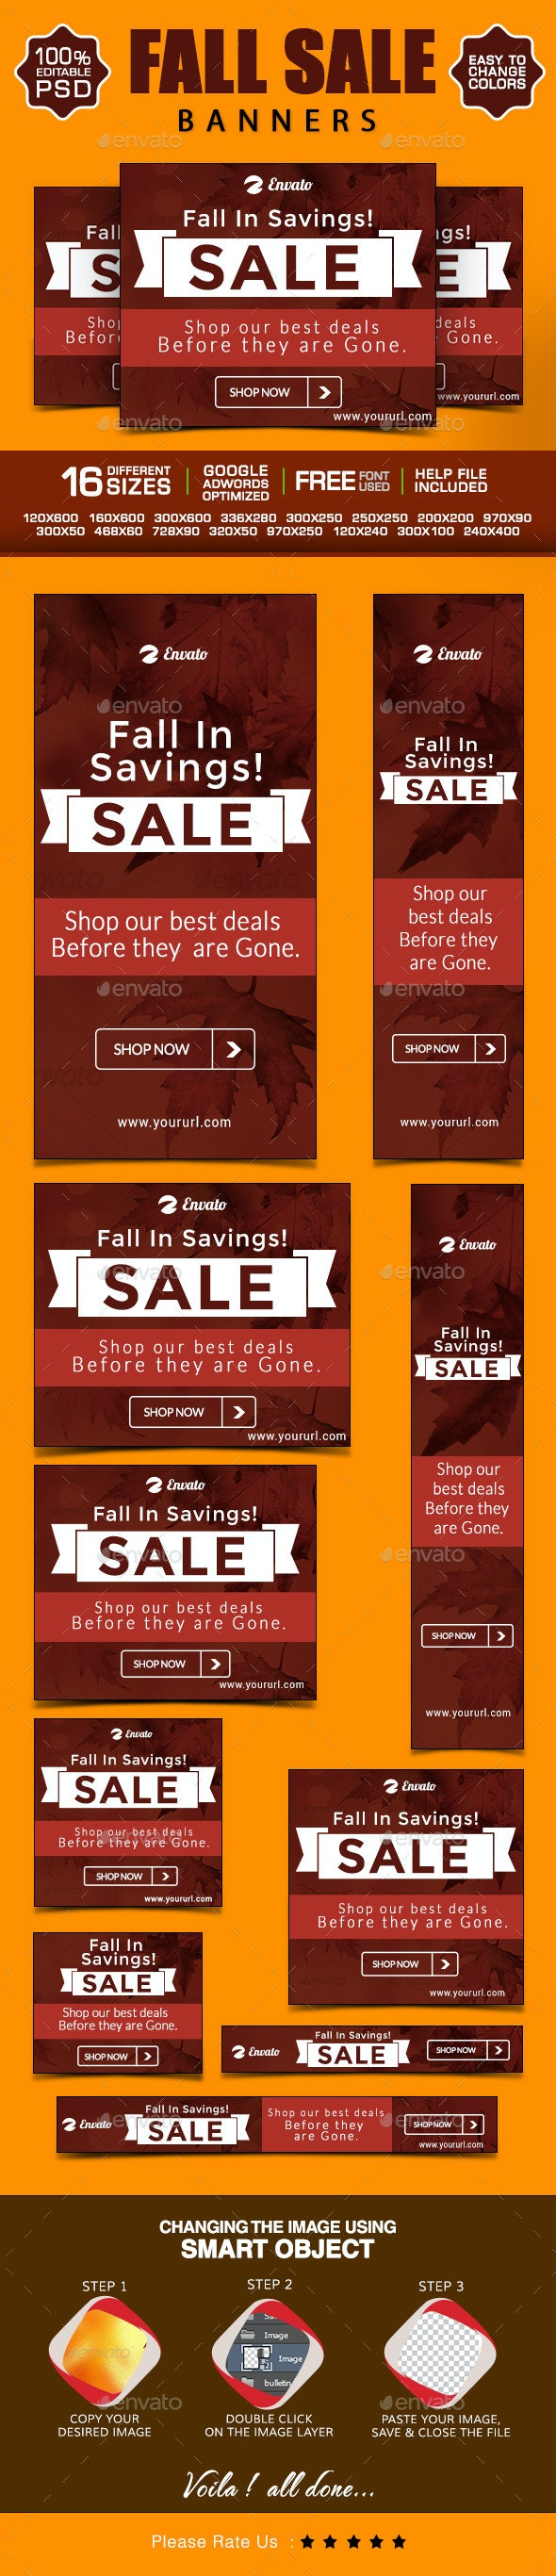 Fall Sale Web Banner Design - Banners & Ads Web Elements